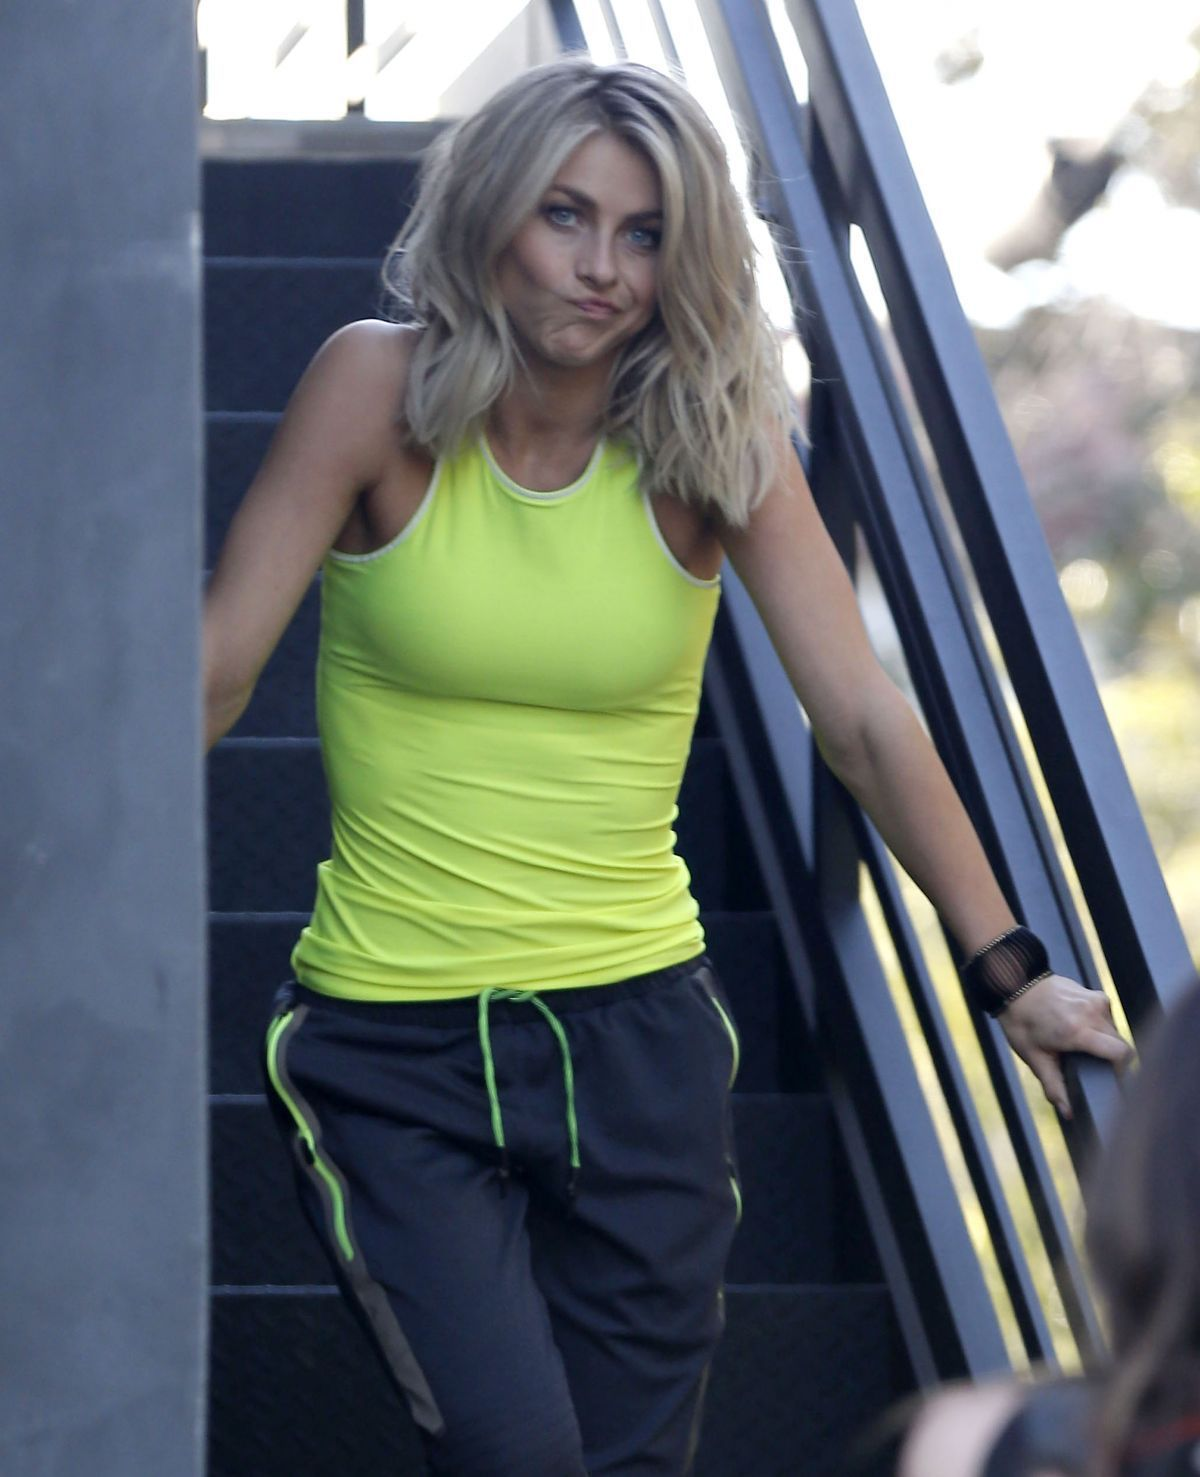 JULIANNE HOUGH on the Set of a Photoshoot in West Hollywood 02/03/2016 #juliannehoughstyle JULIANNE HOUGH on the Set of a Photoshoot in West Hollywood 02/03/2016 #juliannehoughstyle JULIANNE HOUGH on the Set of a Photoshoot in West Hollywood 02/03/2016 #juliannehoughstyle JULIANNE HOUGH on the Set of a Photoshoot in West Hollywood 02/03/2016 #juliannehoughstyle JULIANNE HOUGH on the Set of a Photoshoot in West Hollywood 02/03/2016 #juliannehoughstyle JULIANNE HOUGH on the Set of a Photoshoot in #juliannehoughstyle